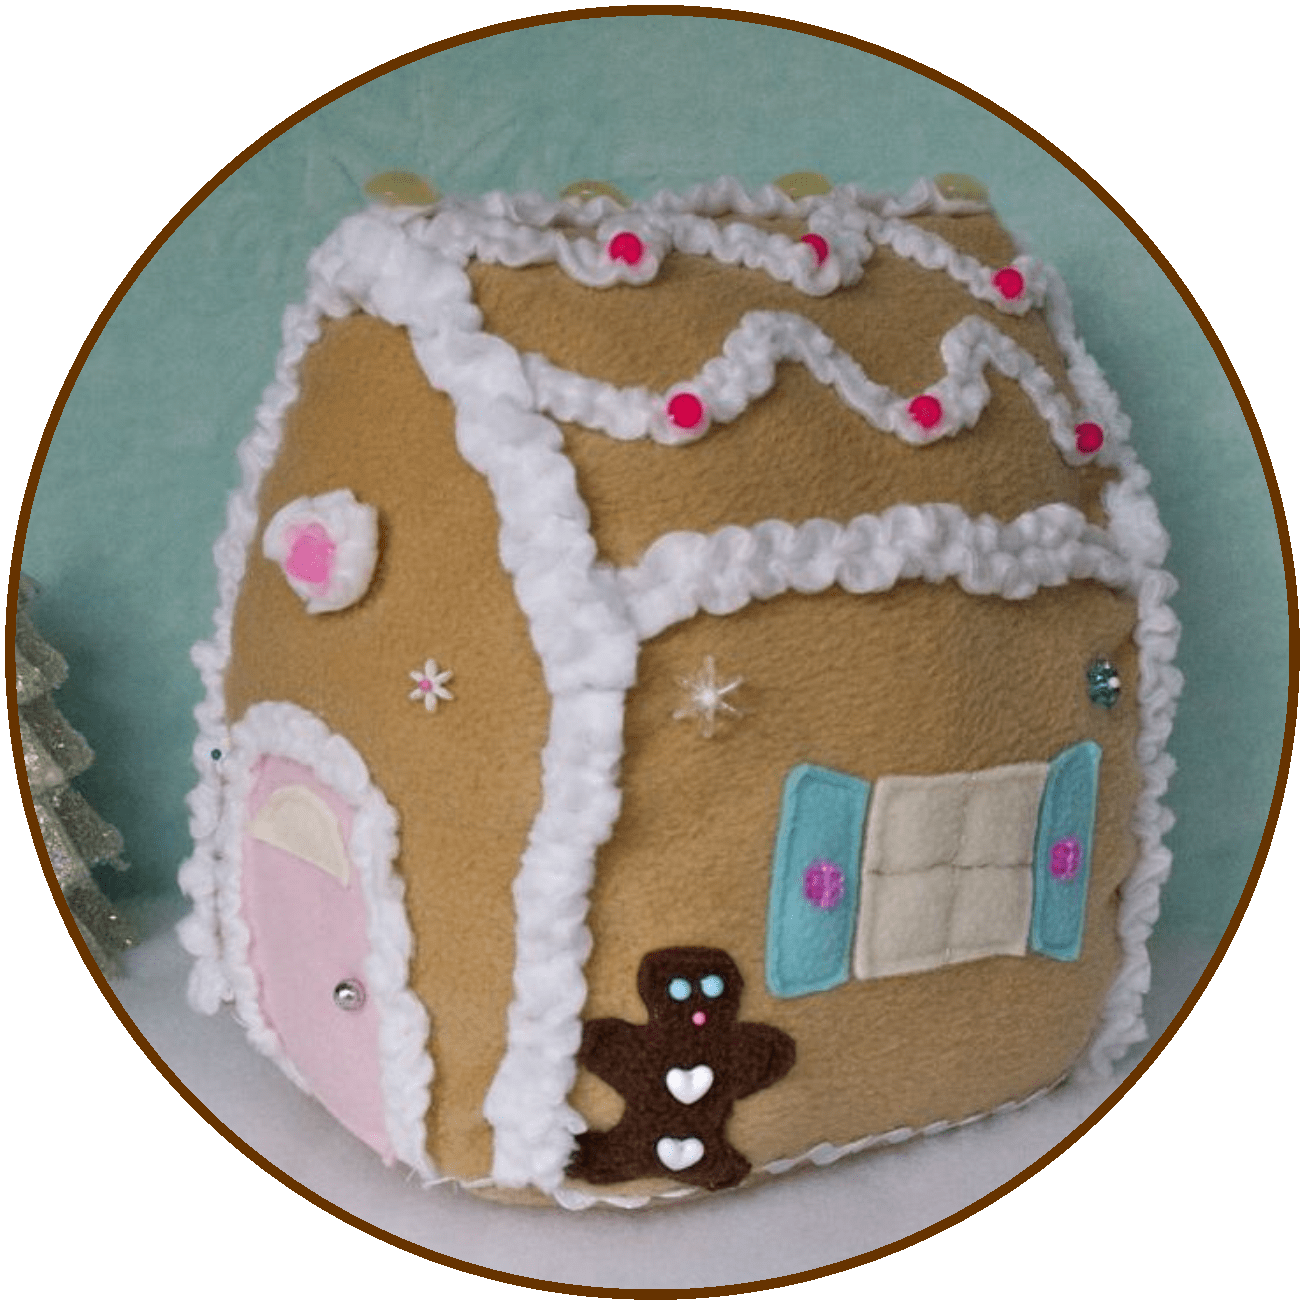 Gingerbread house icing template clipart vector royalty free sewing cottage gingerbread house - cute gingerbread house for Christmas vector royalty free